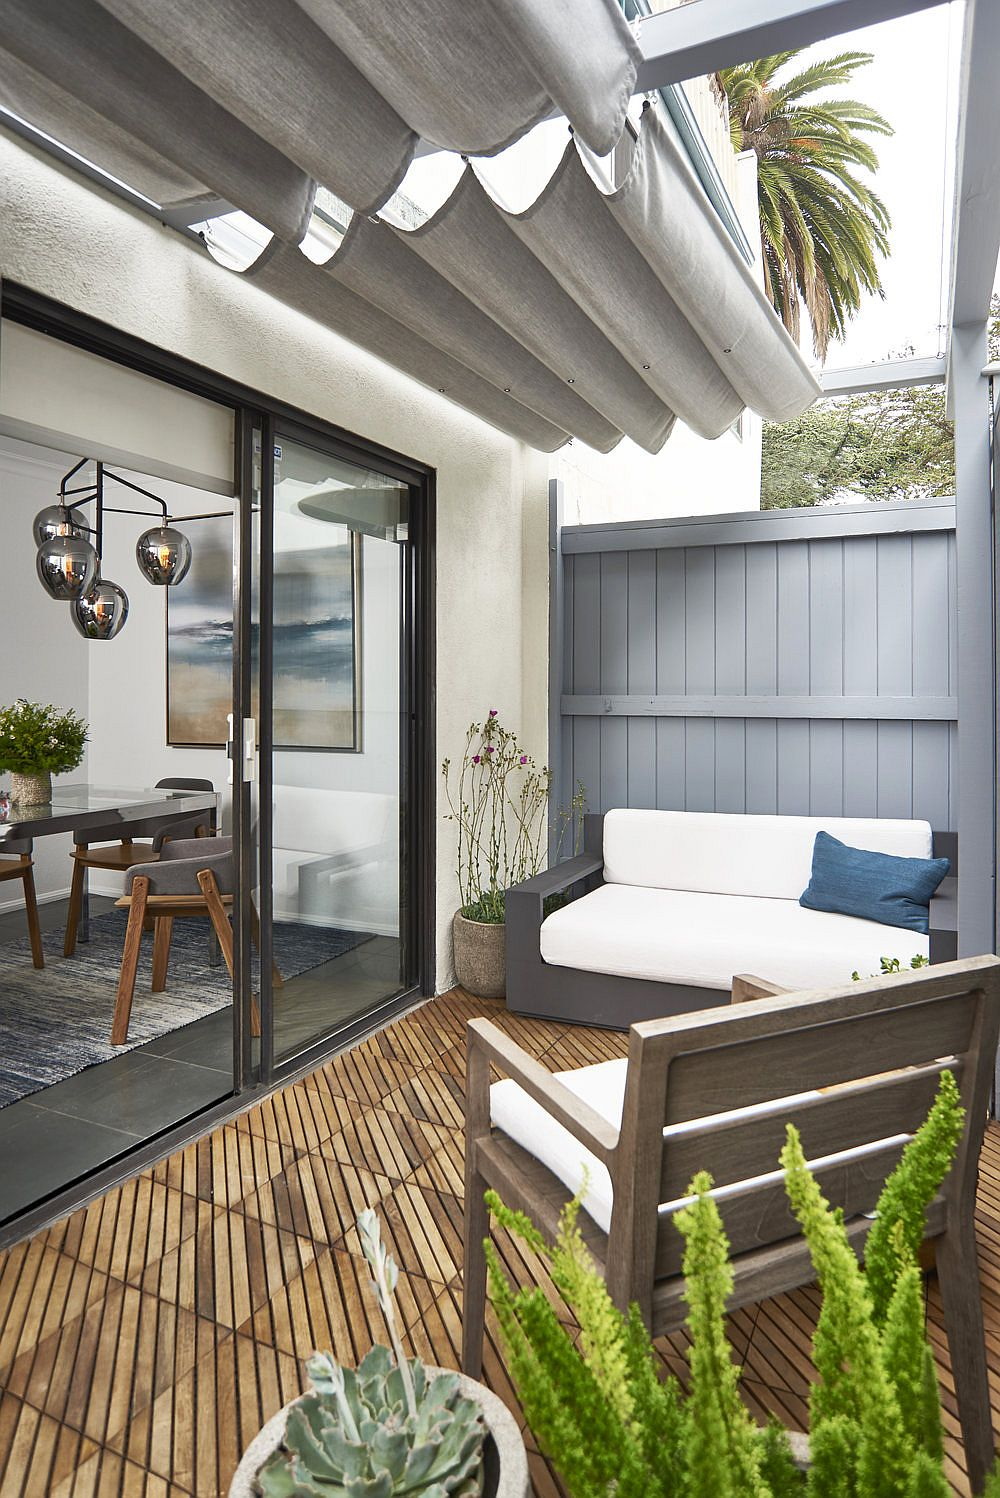 Small-private-backyard-deck-with-a-dash-of-greenery